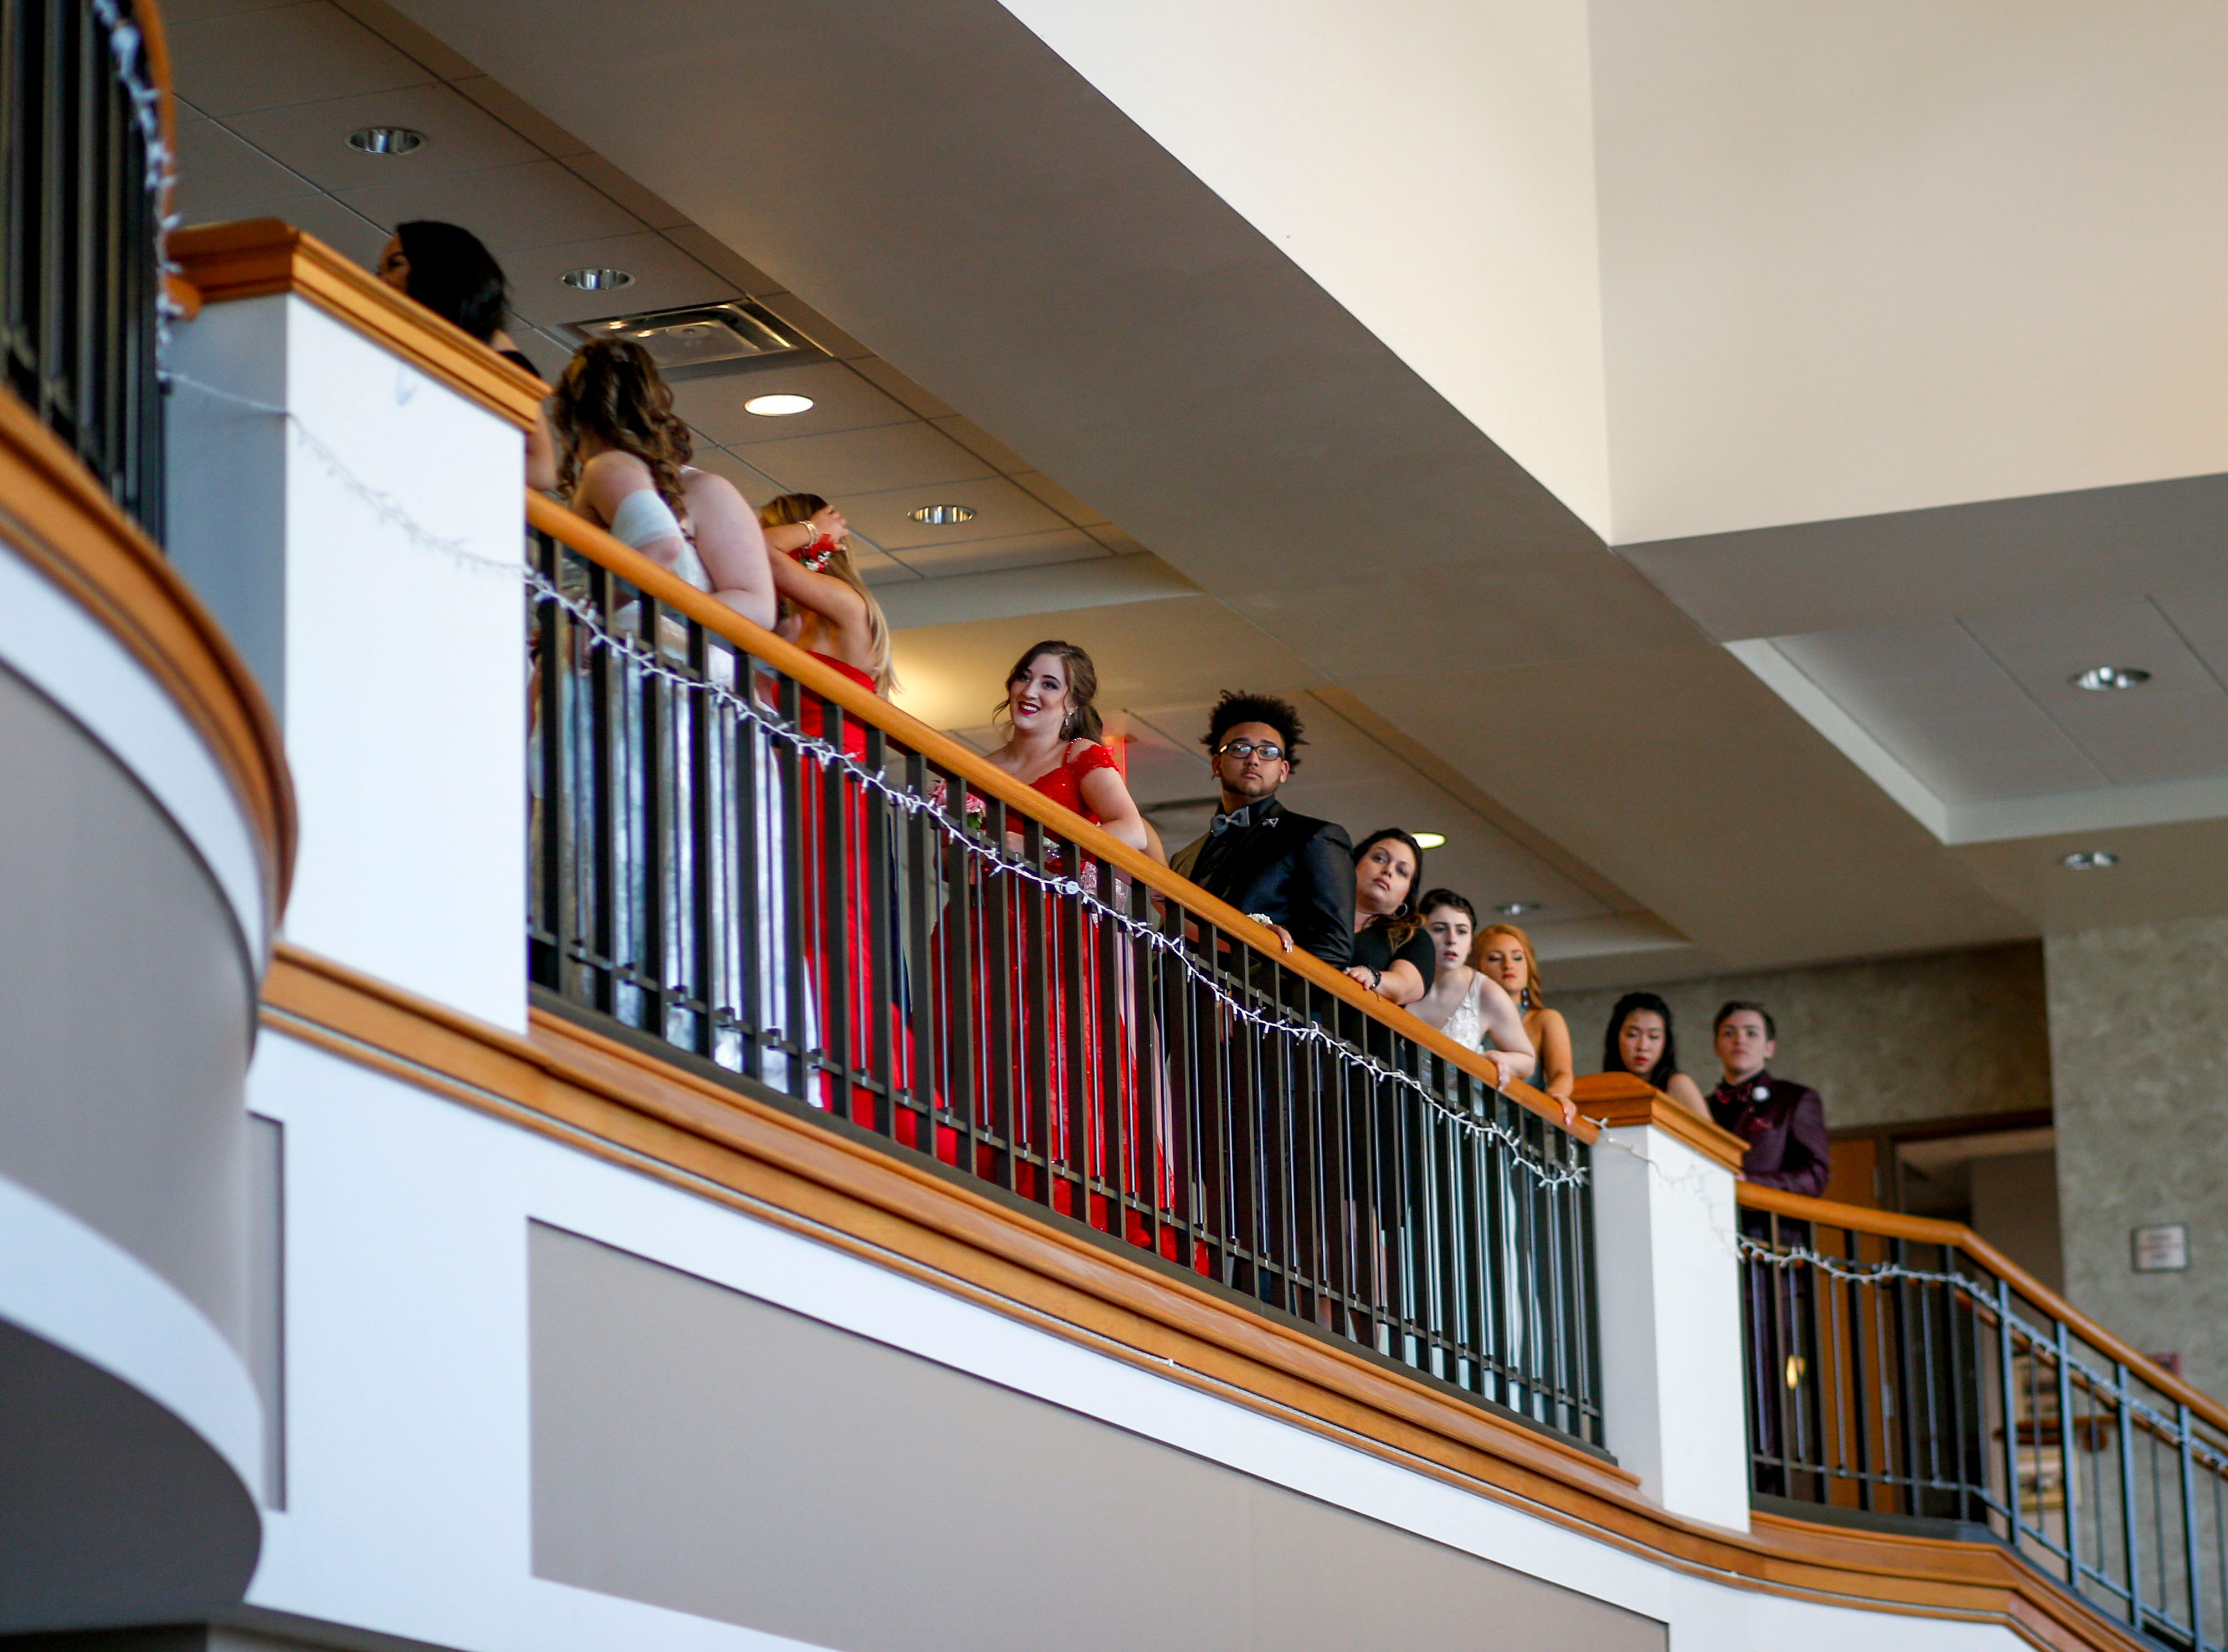 Students form a line before descending a staircase to walk in front of friends and family during Clarksville Academy's 2019 prom at The Bruce Convention Center in Hopkinsville, Ky., on Saturday, April 6, 2019.